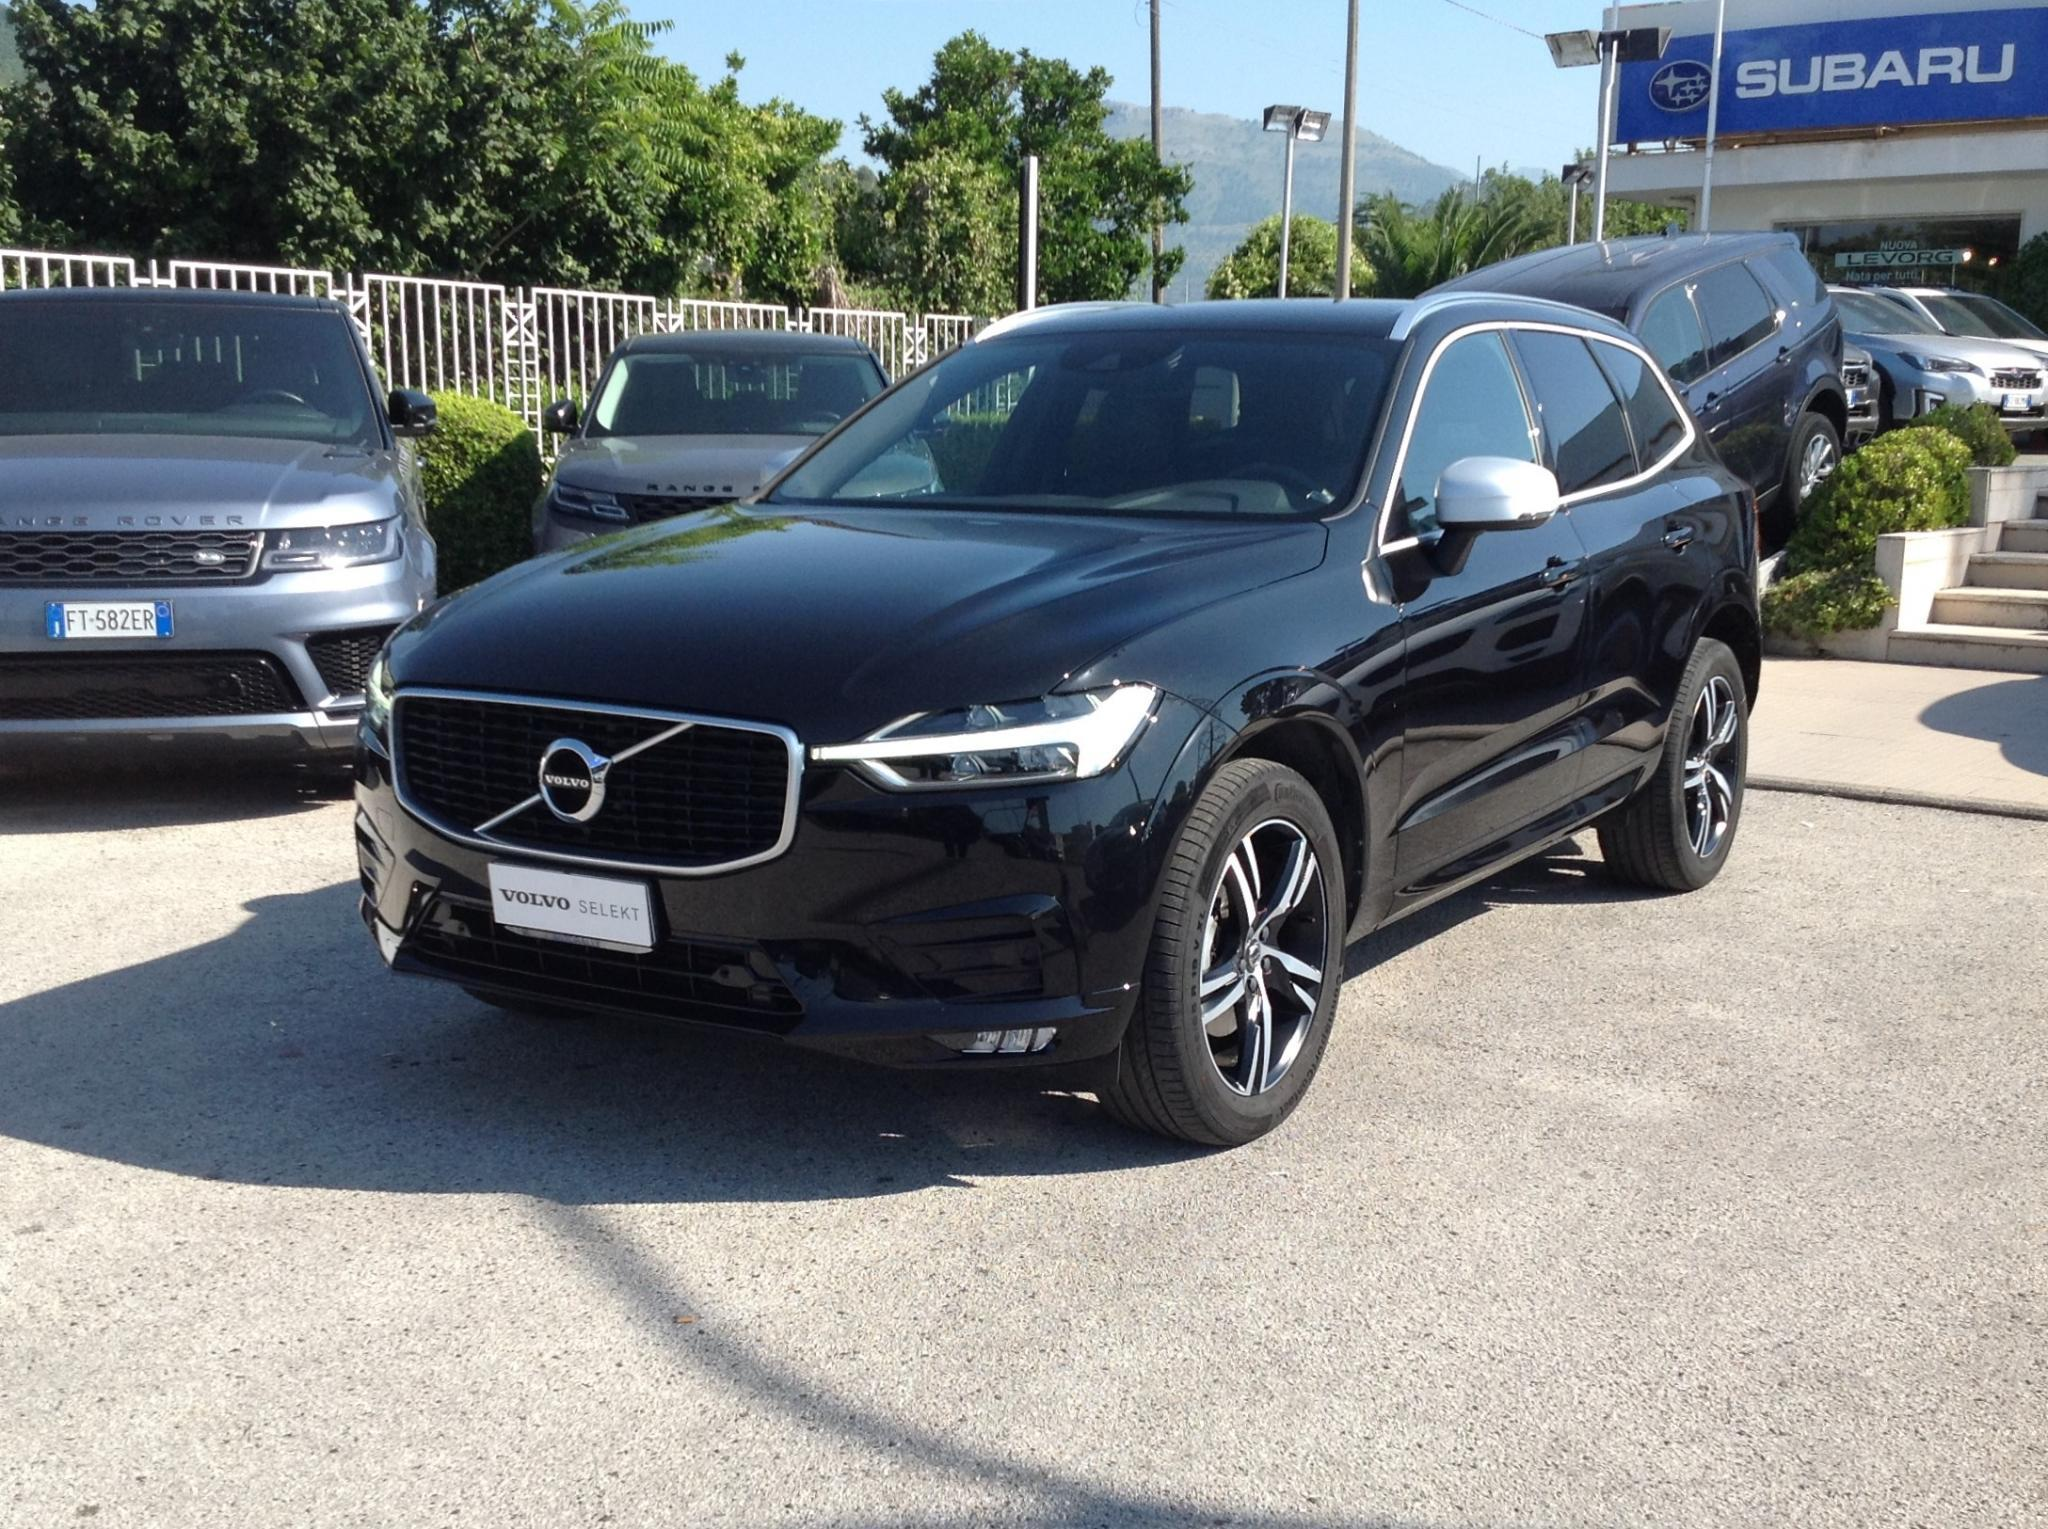 Foto Volvo XC 60 D4 AWD Geartronic R-design